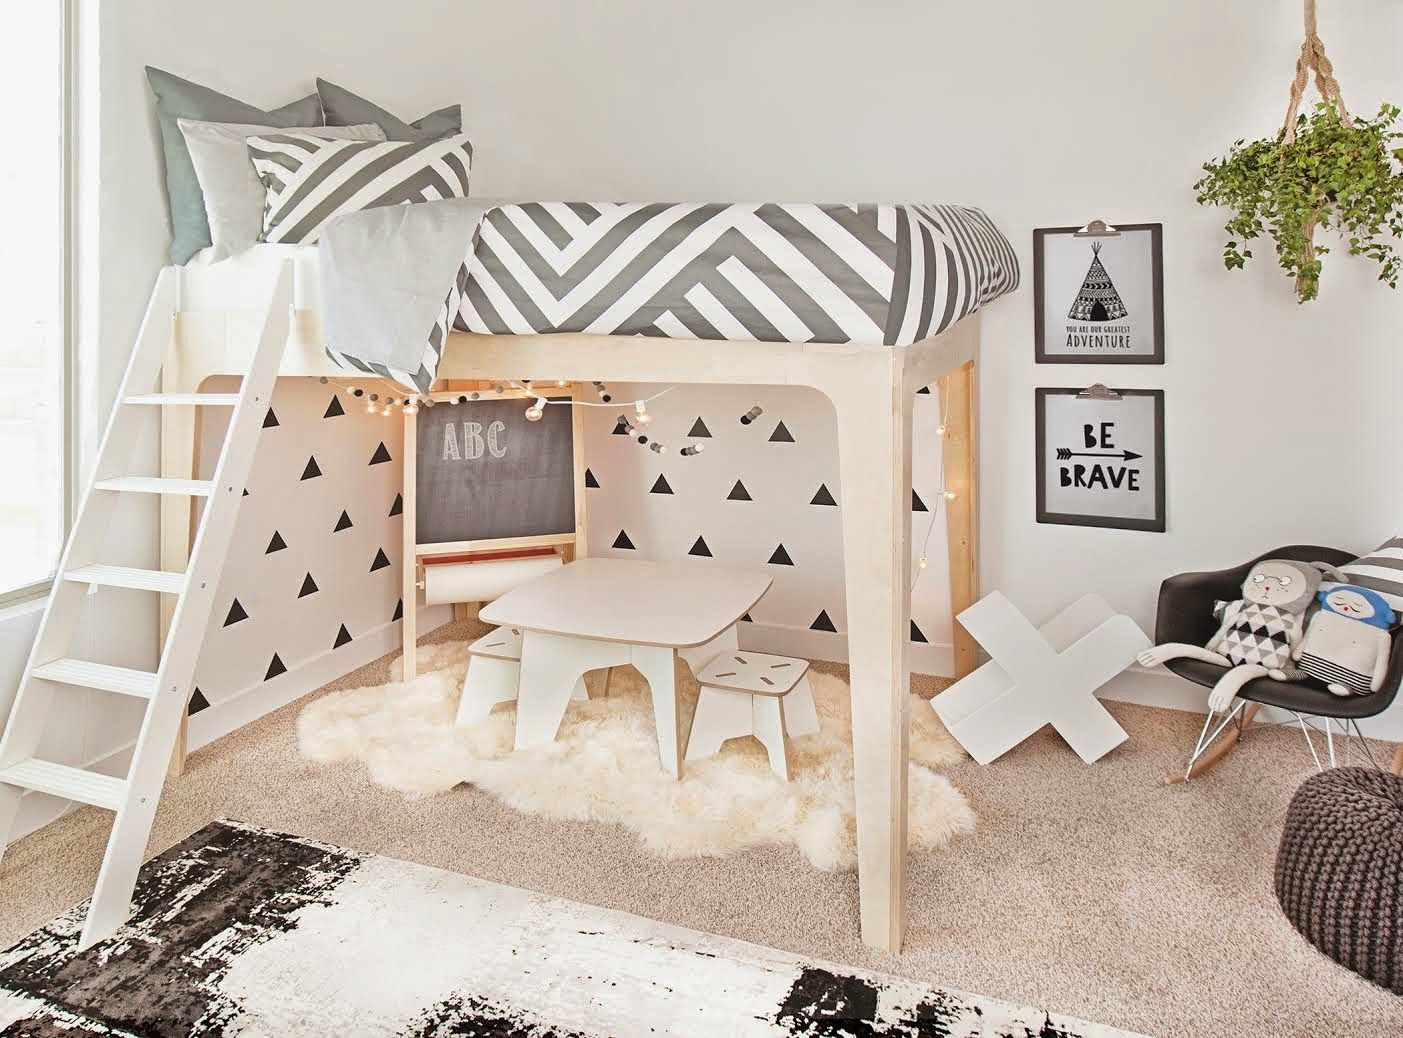 hanes 39 room reveal cara loren sch ne teppiche teppiche und kinderzimmer. Black Bedroom Furniture Sets. Home Design Ideas